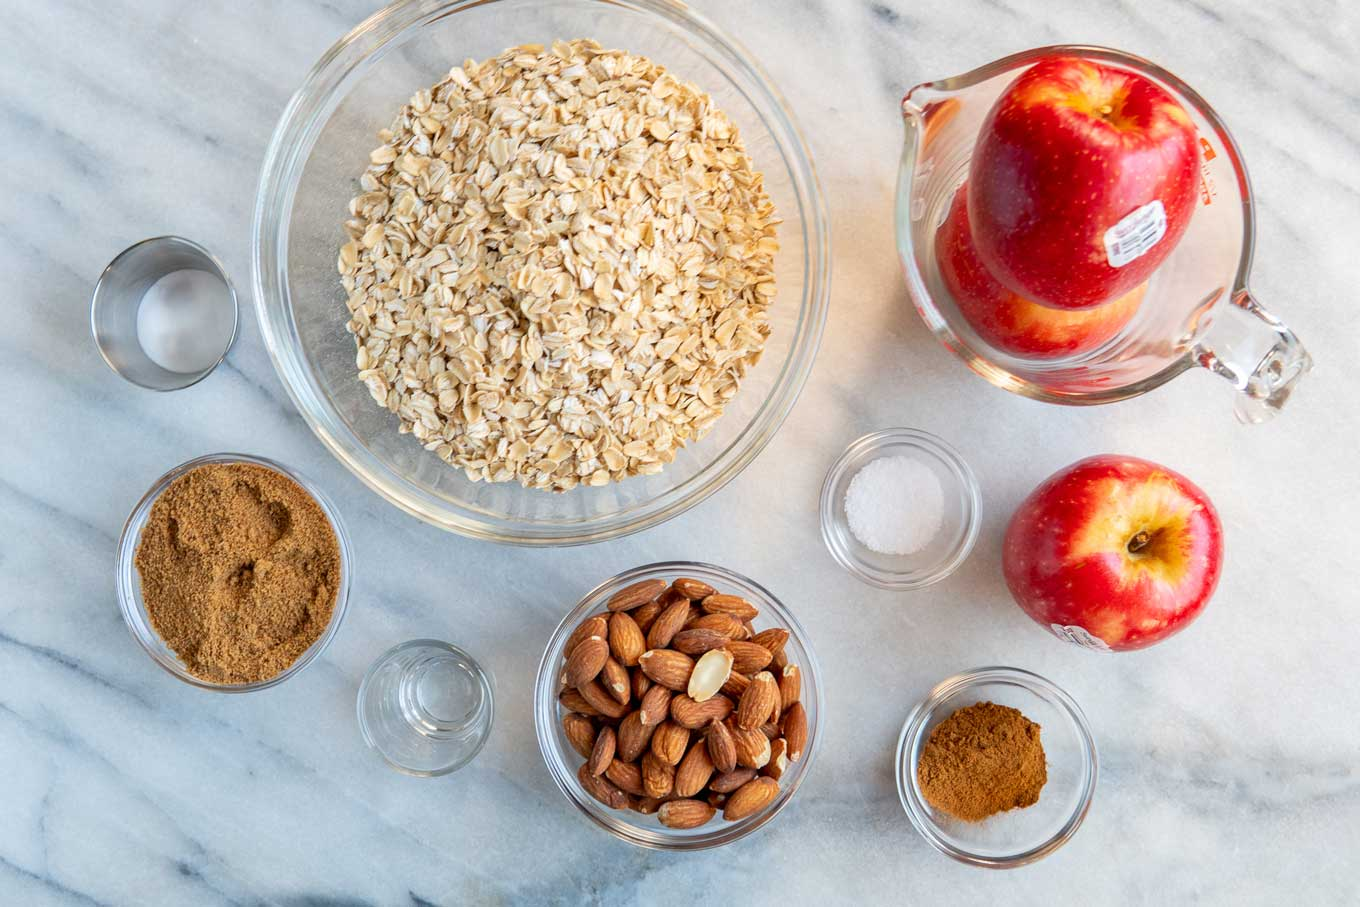 overhead image of ingredients for apple cinnamon almond blender muffins - oats, pples, almonds, cinnamon, baking soda, salt, sugar, almond extract